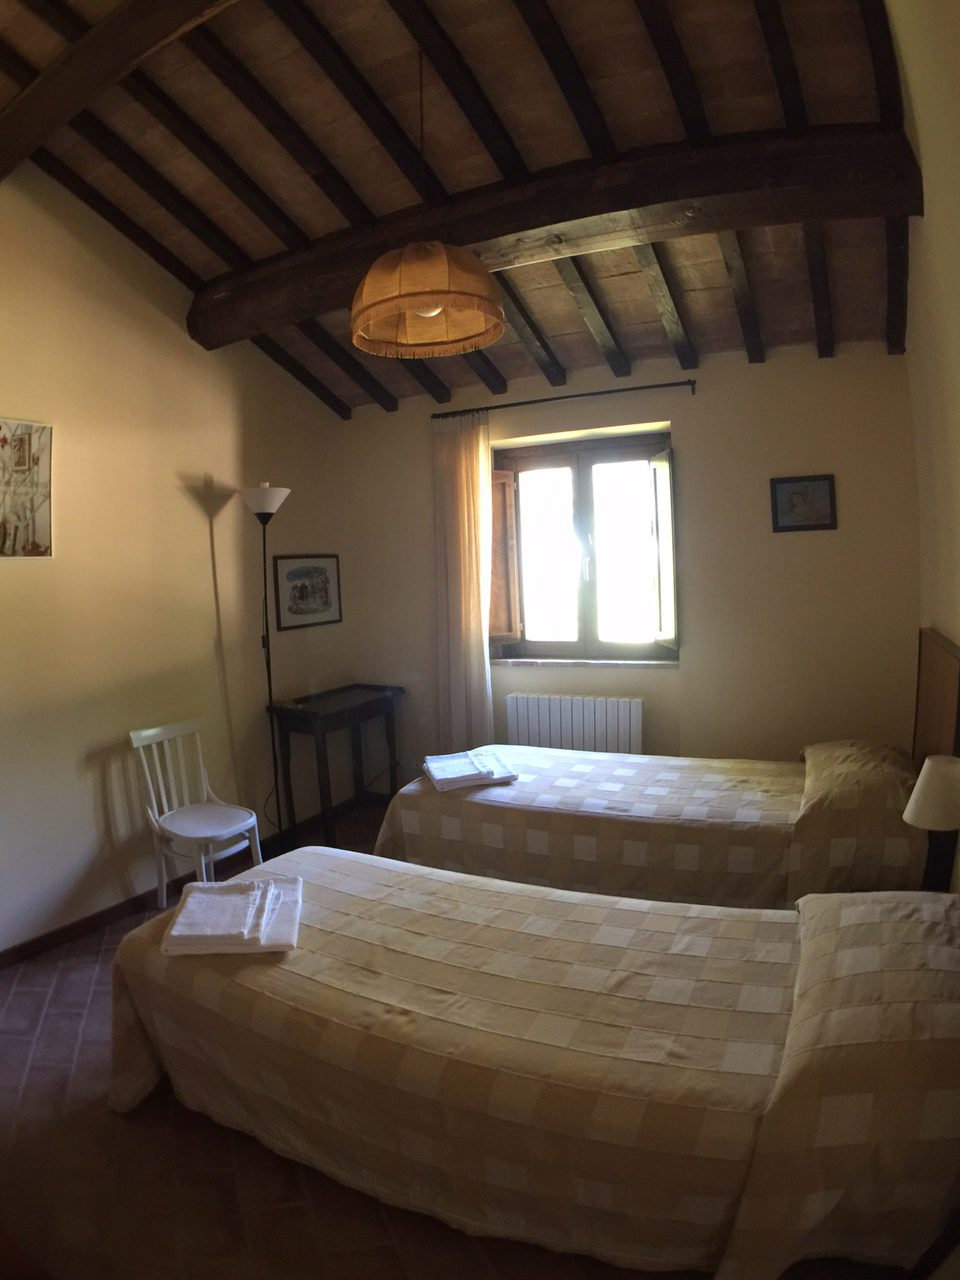 HomeAway-vacanze-marche-